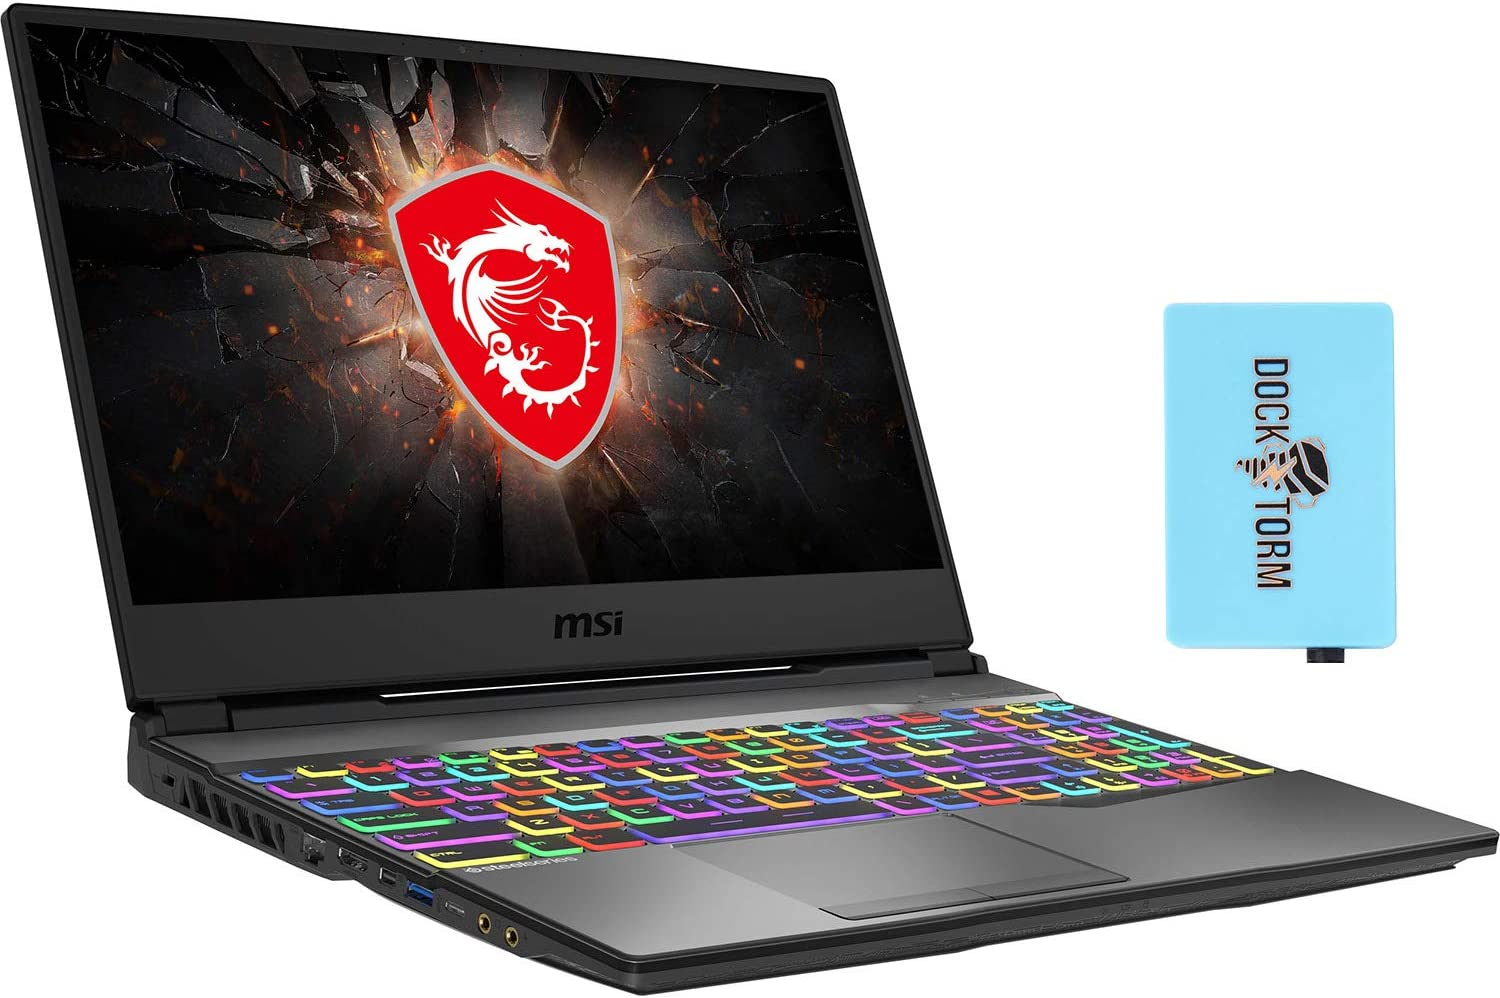 MSI GP65 Leopard 10SDK-433 Gaming and Entertainment Laptop (Intel i7-10750H 6-Core, 32GB RAM, 1TB PCIe SSD, NVIDIA GTX 1660 Ti, 15.6